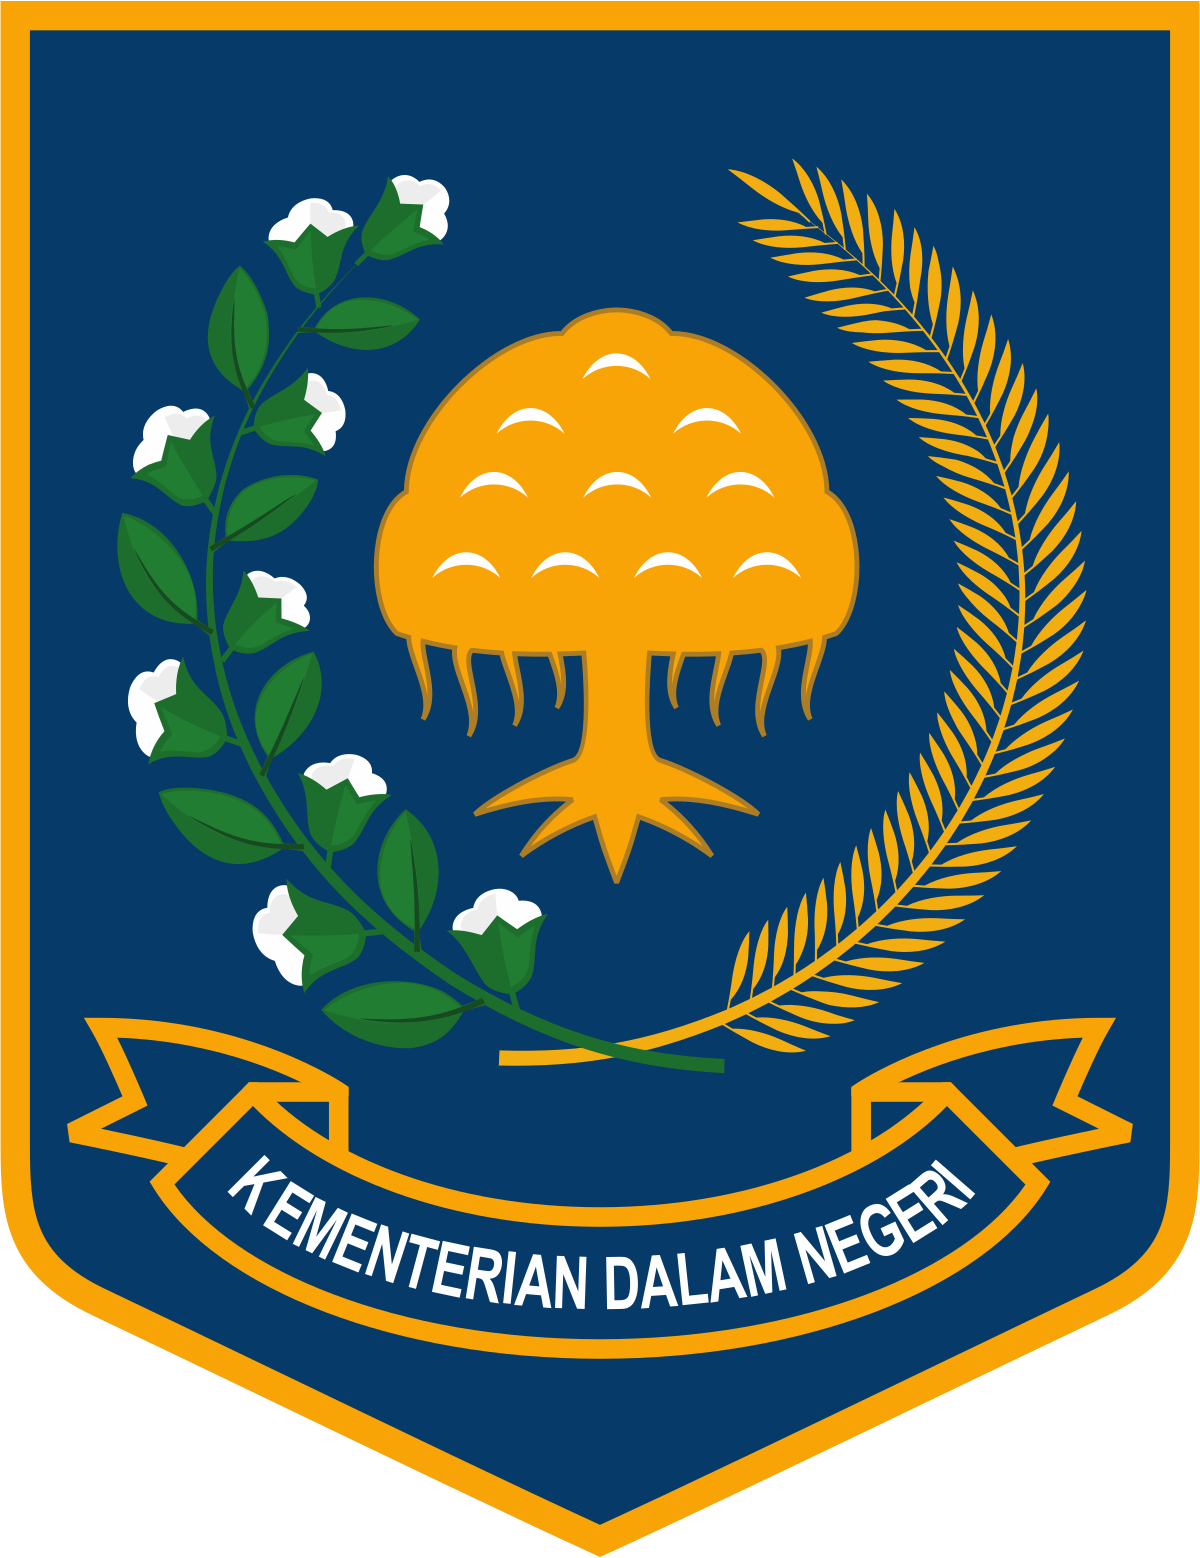 Department for community development and religion clipart clip royalty free Ministry of Home Affairs (Indonesia) - Wikipedia clip royalty free